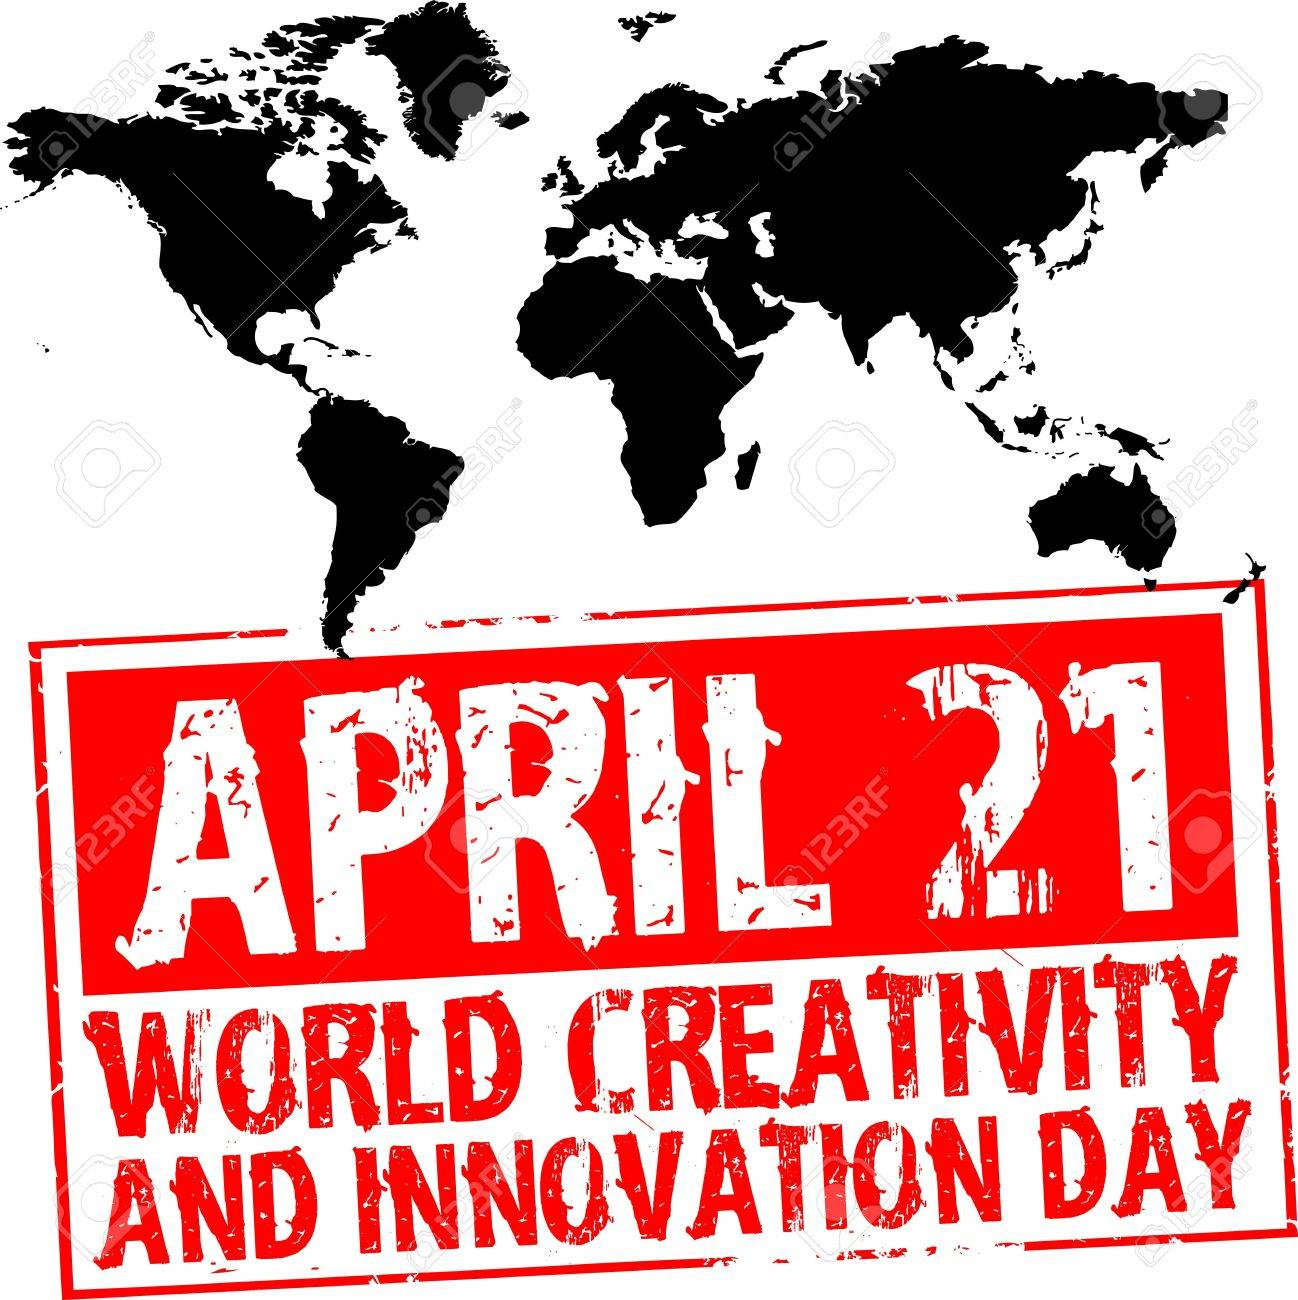 World Creativity And Innovation Day Stock Photo, Picture And Royalty Free  Image. Image 6919865.